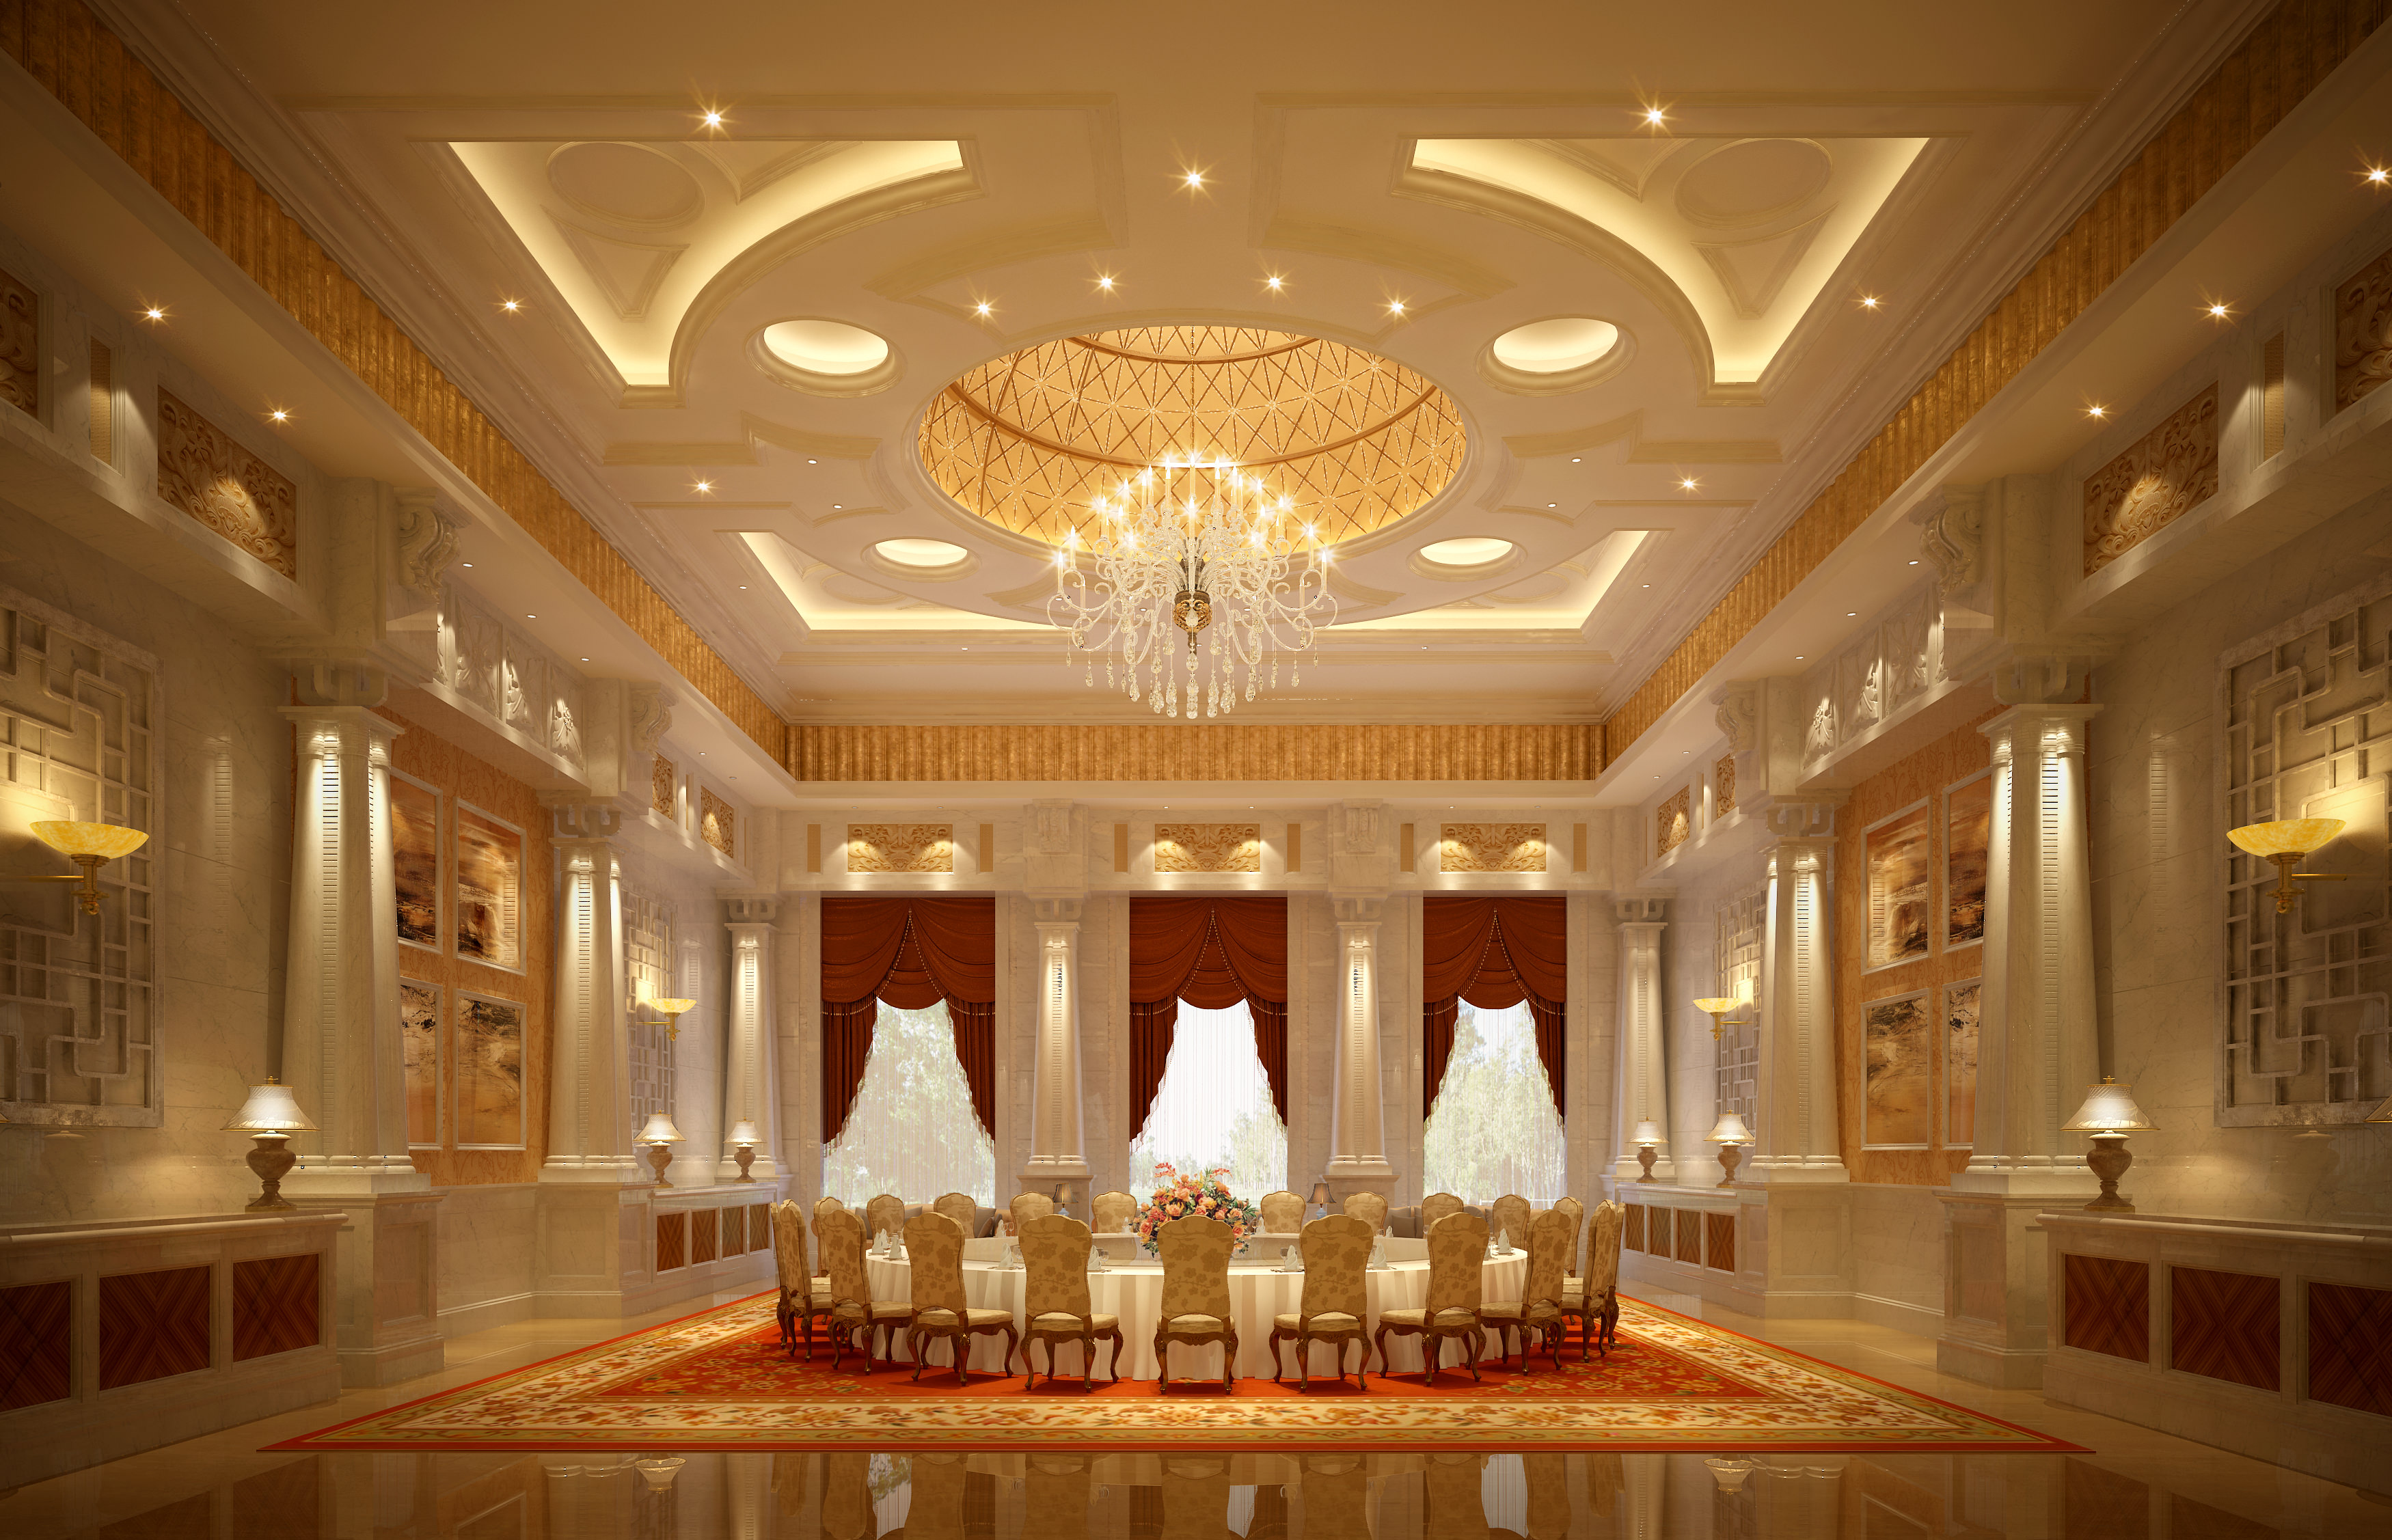 Luxury banquet hall interior 3d model max for Hall interior images